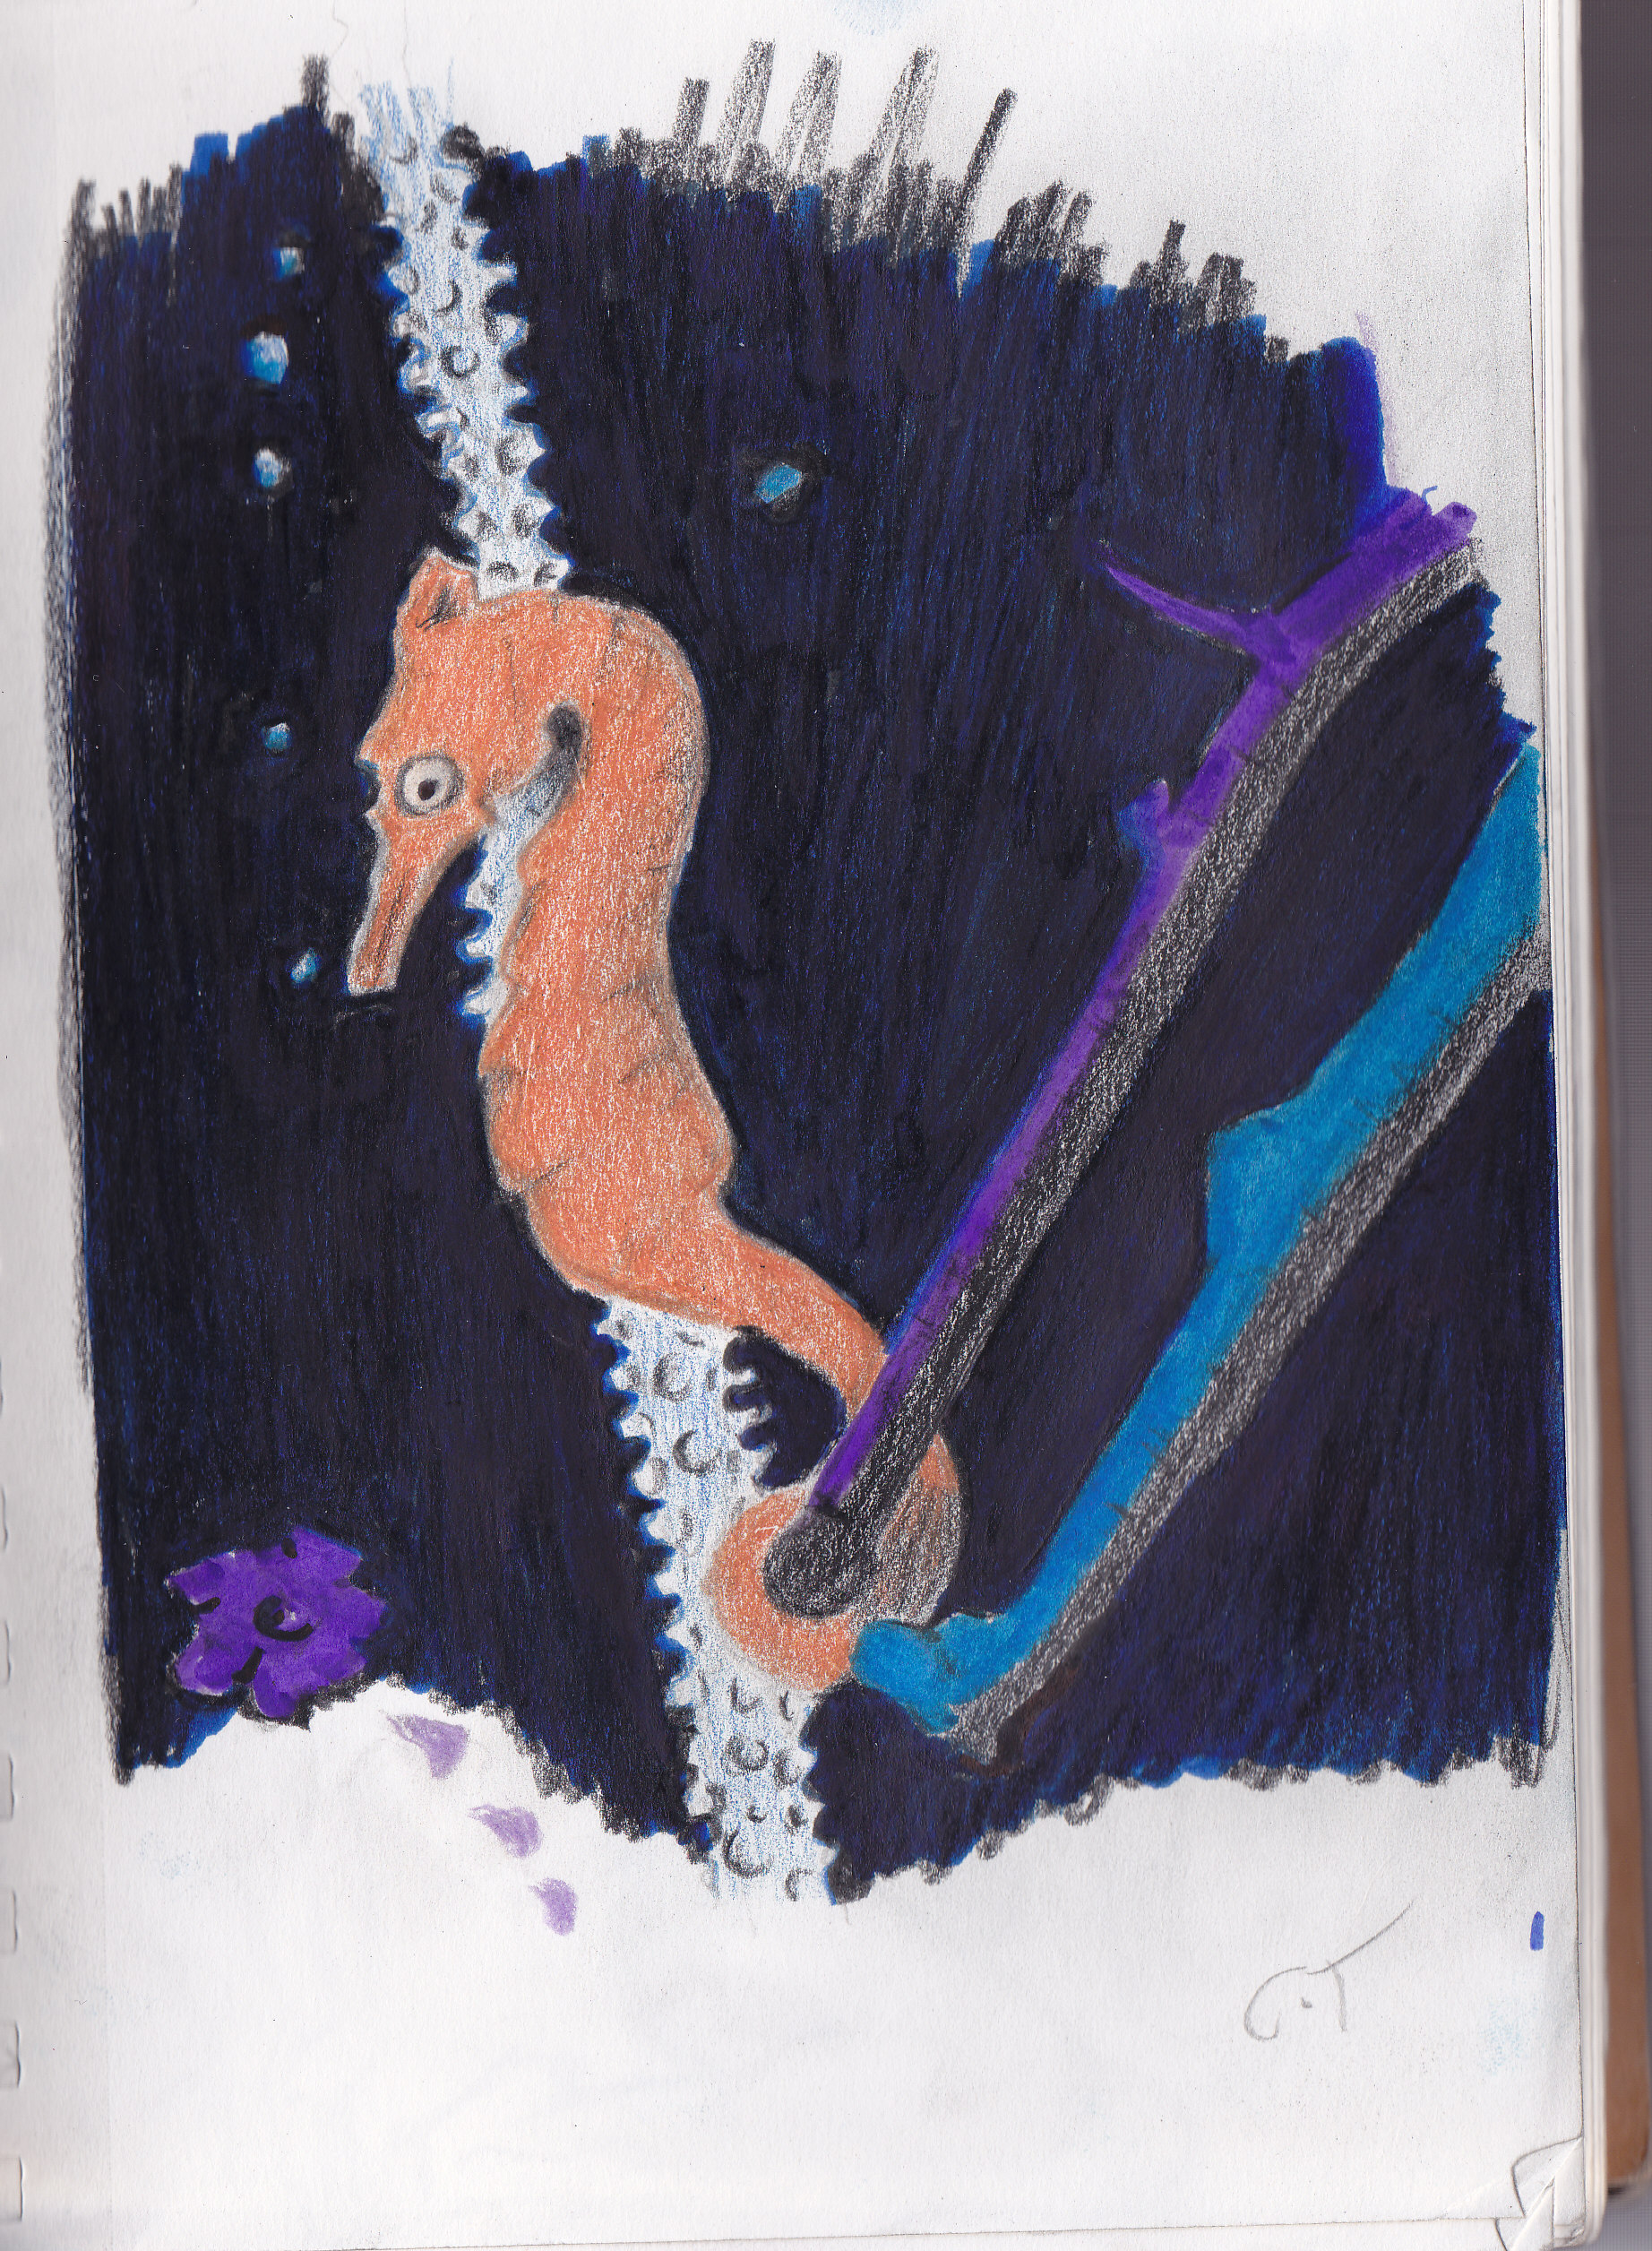 Also finished this seahorse requestedc by bevchen it was done